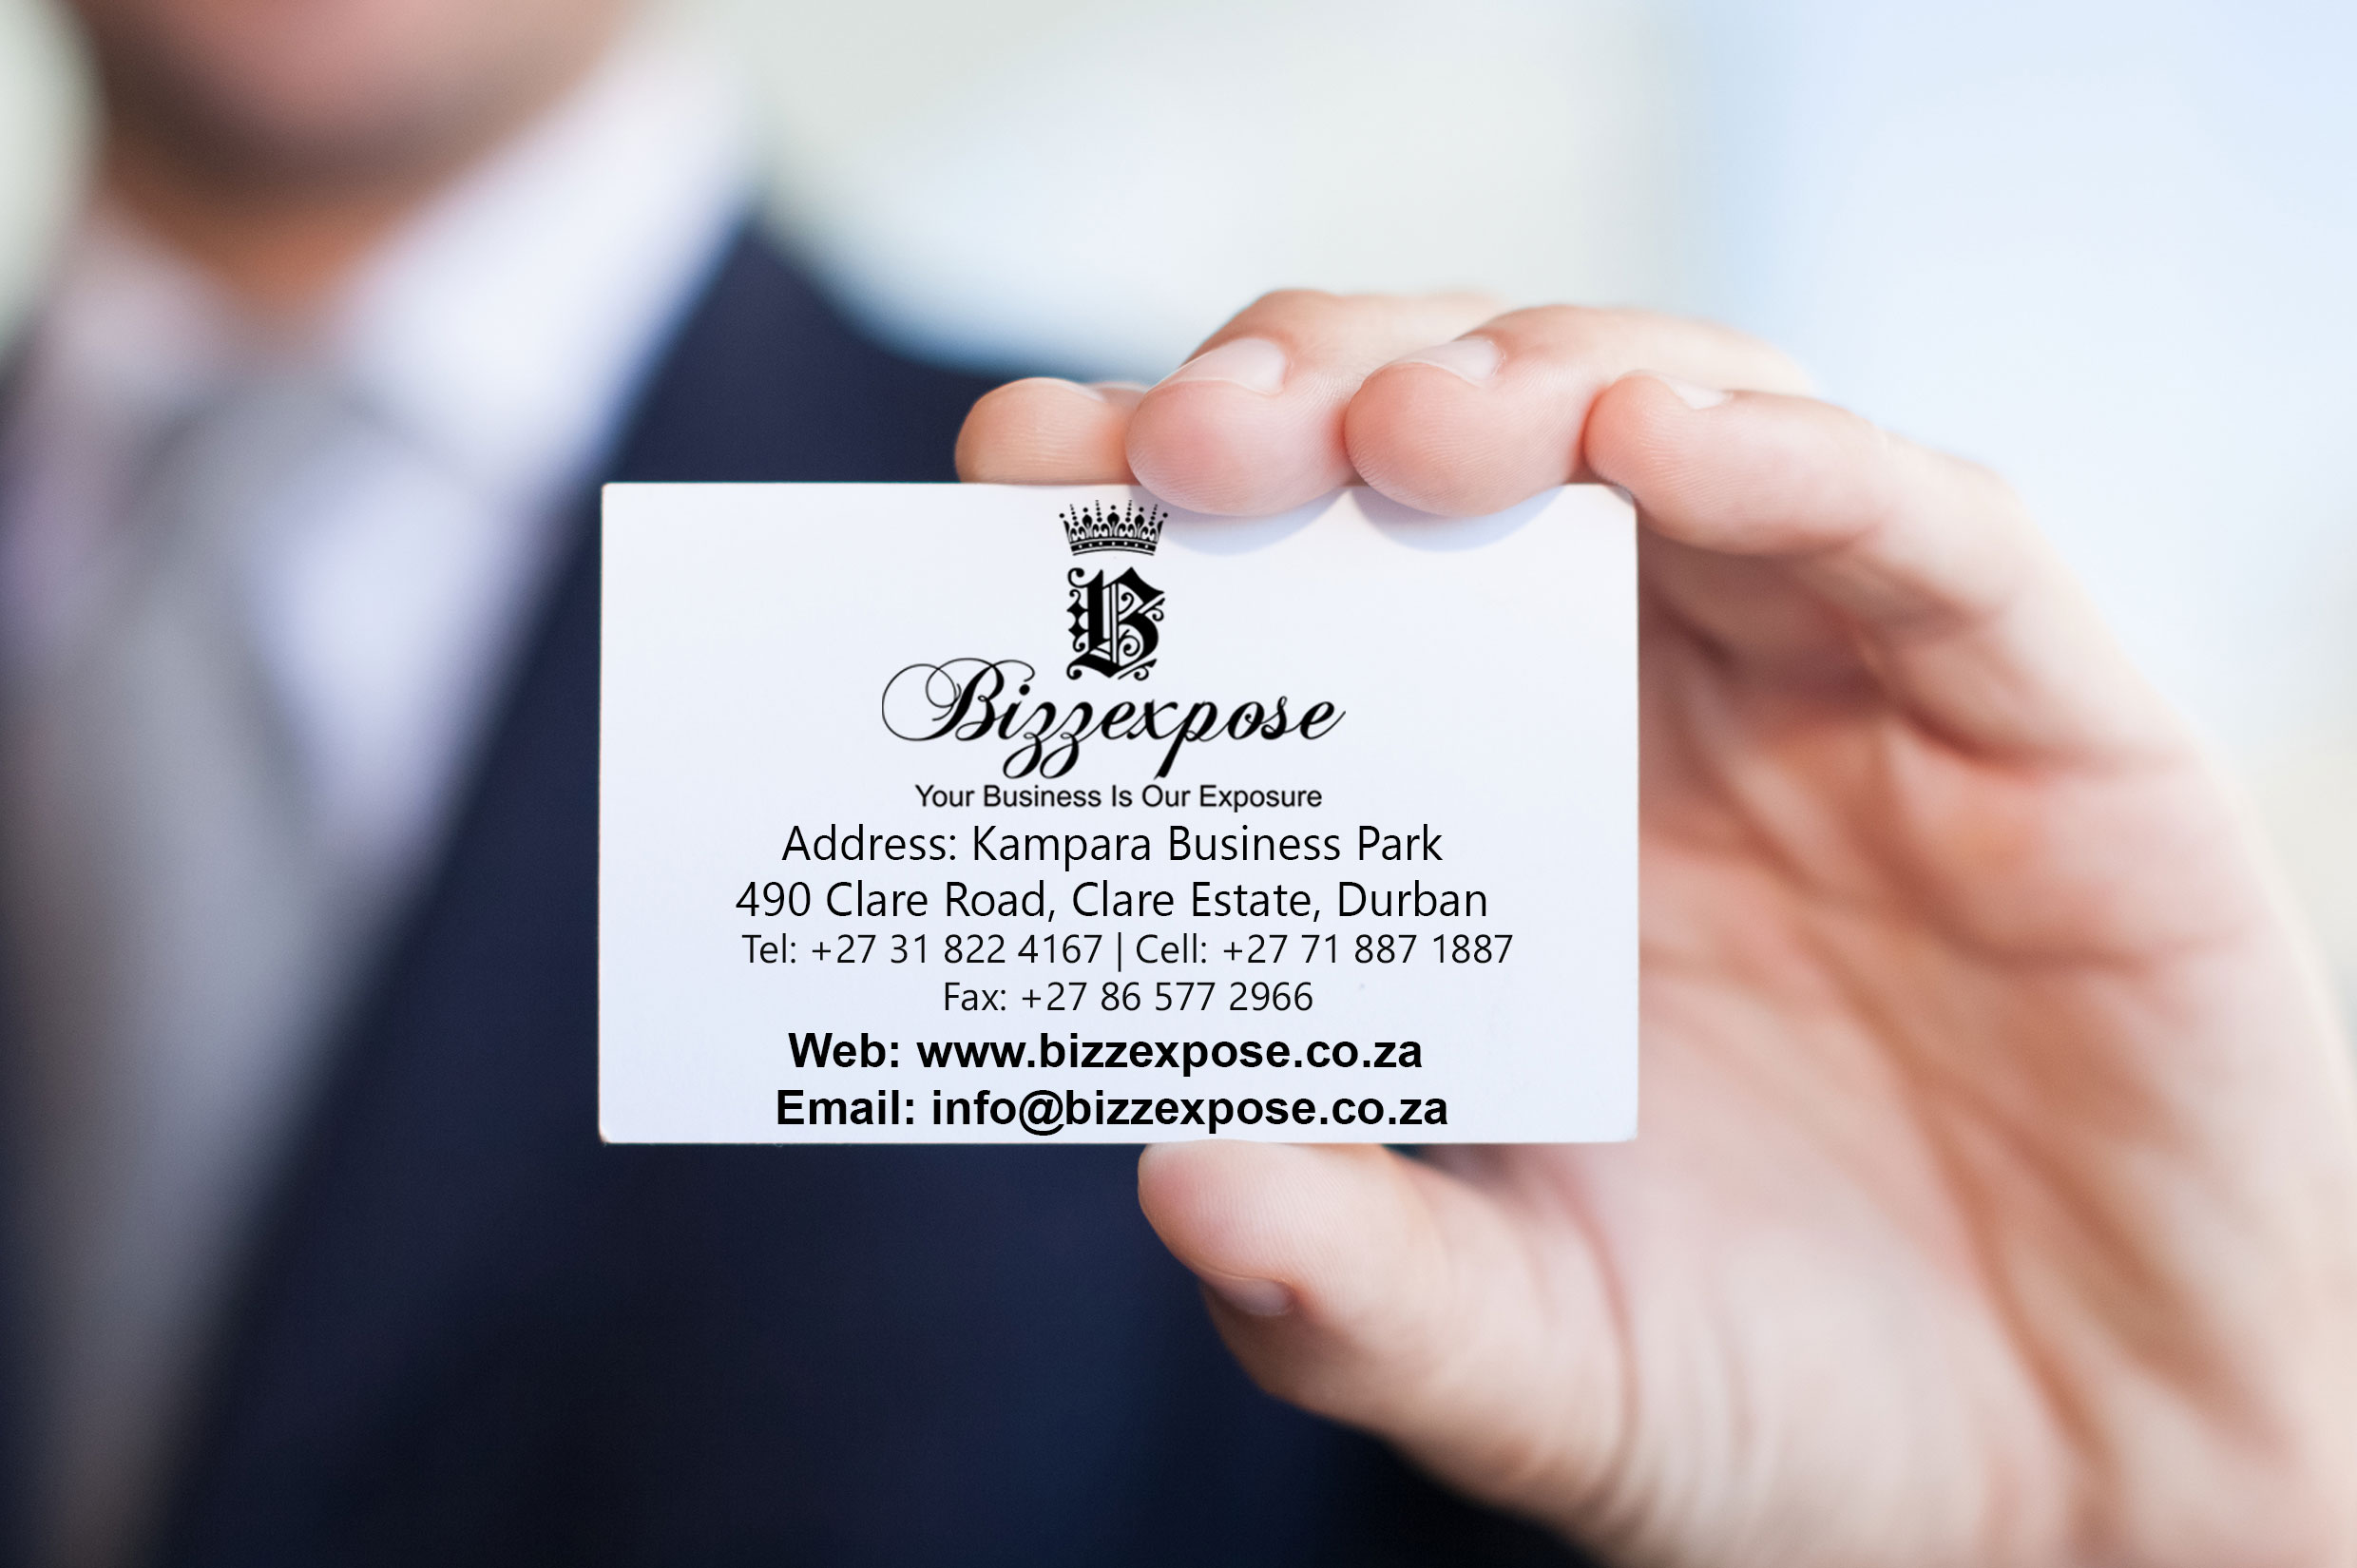 Professional Business Cards in Full Color, High Quality.